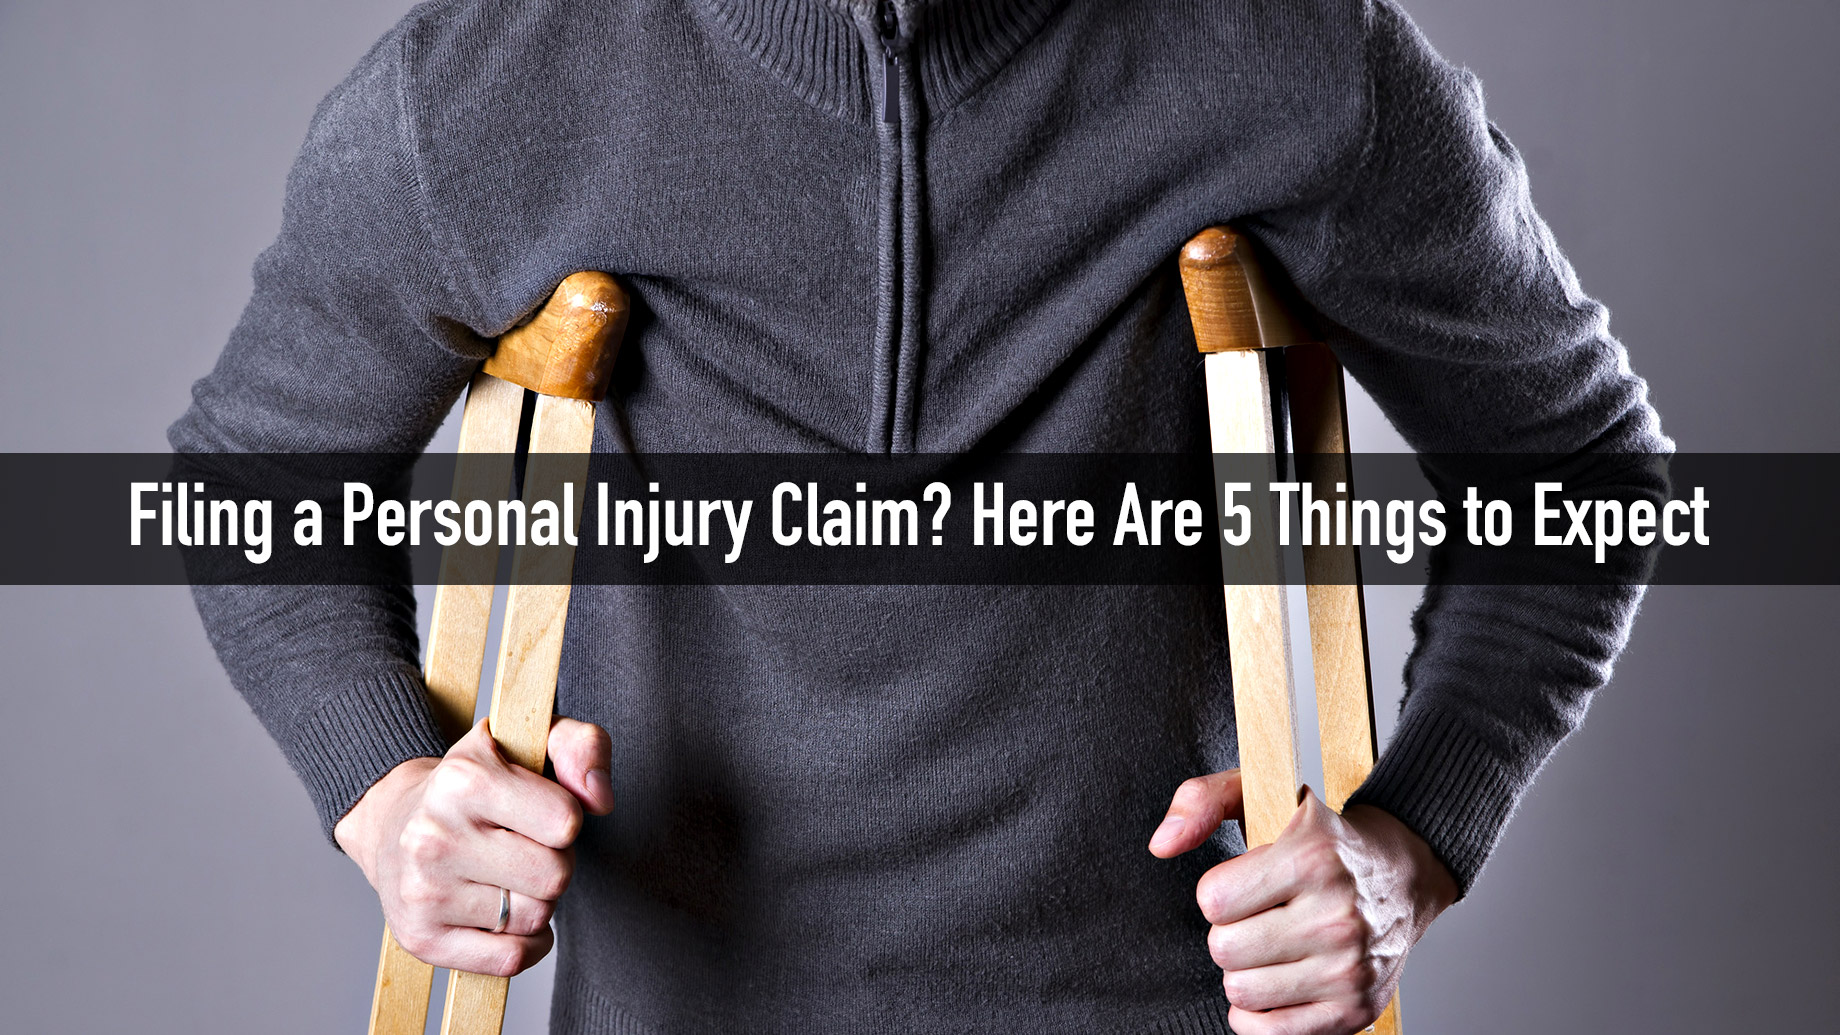 Filing a Personal Injury Claim? Here Are 5 Things to Expect